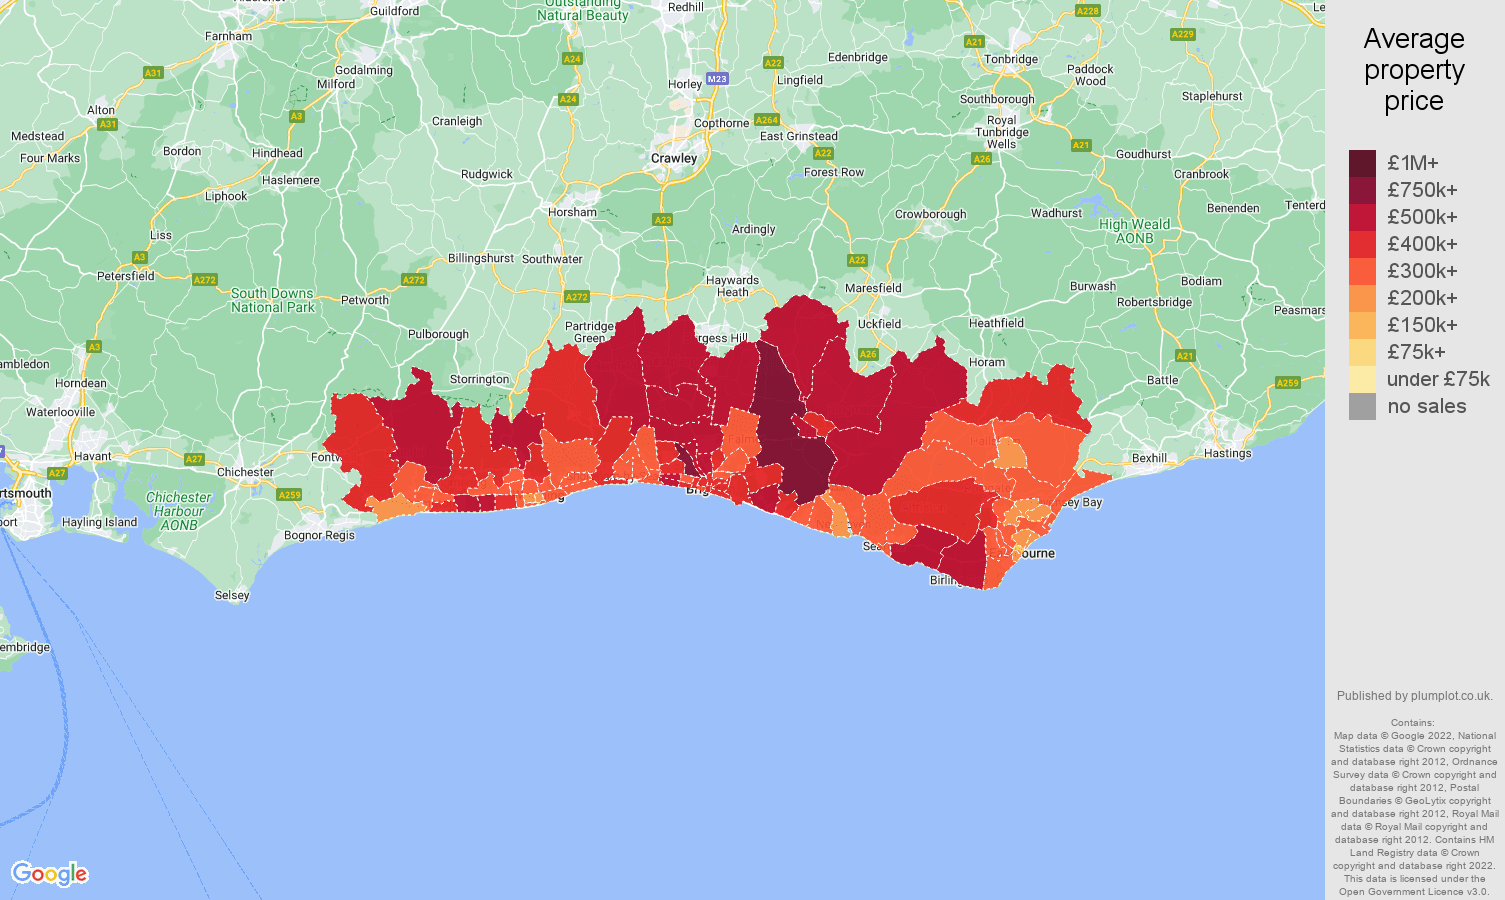 Brighton property prices by postcode sector